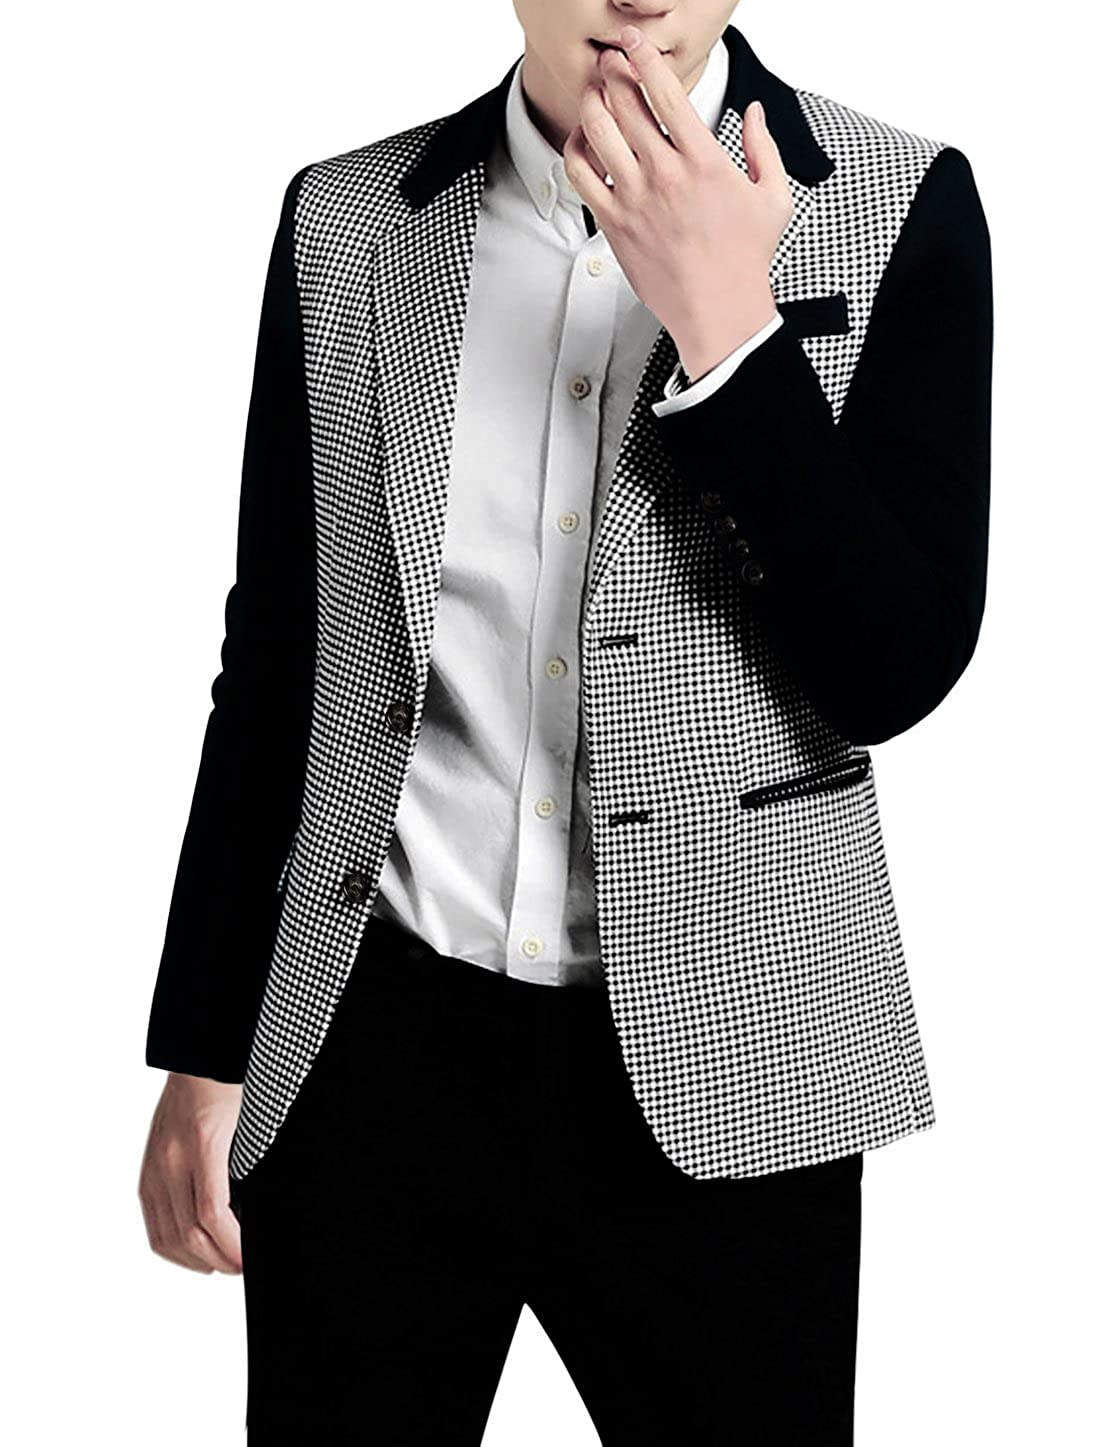 50s Men's Jackets| Greaser Jackets, Leather, Bomber, Gaberdine uxcell Men Houndstooth Long Sleeve Padded Shoulder Single Breasted Blazer $30.93 AT vintagedancer.com